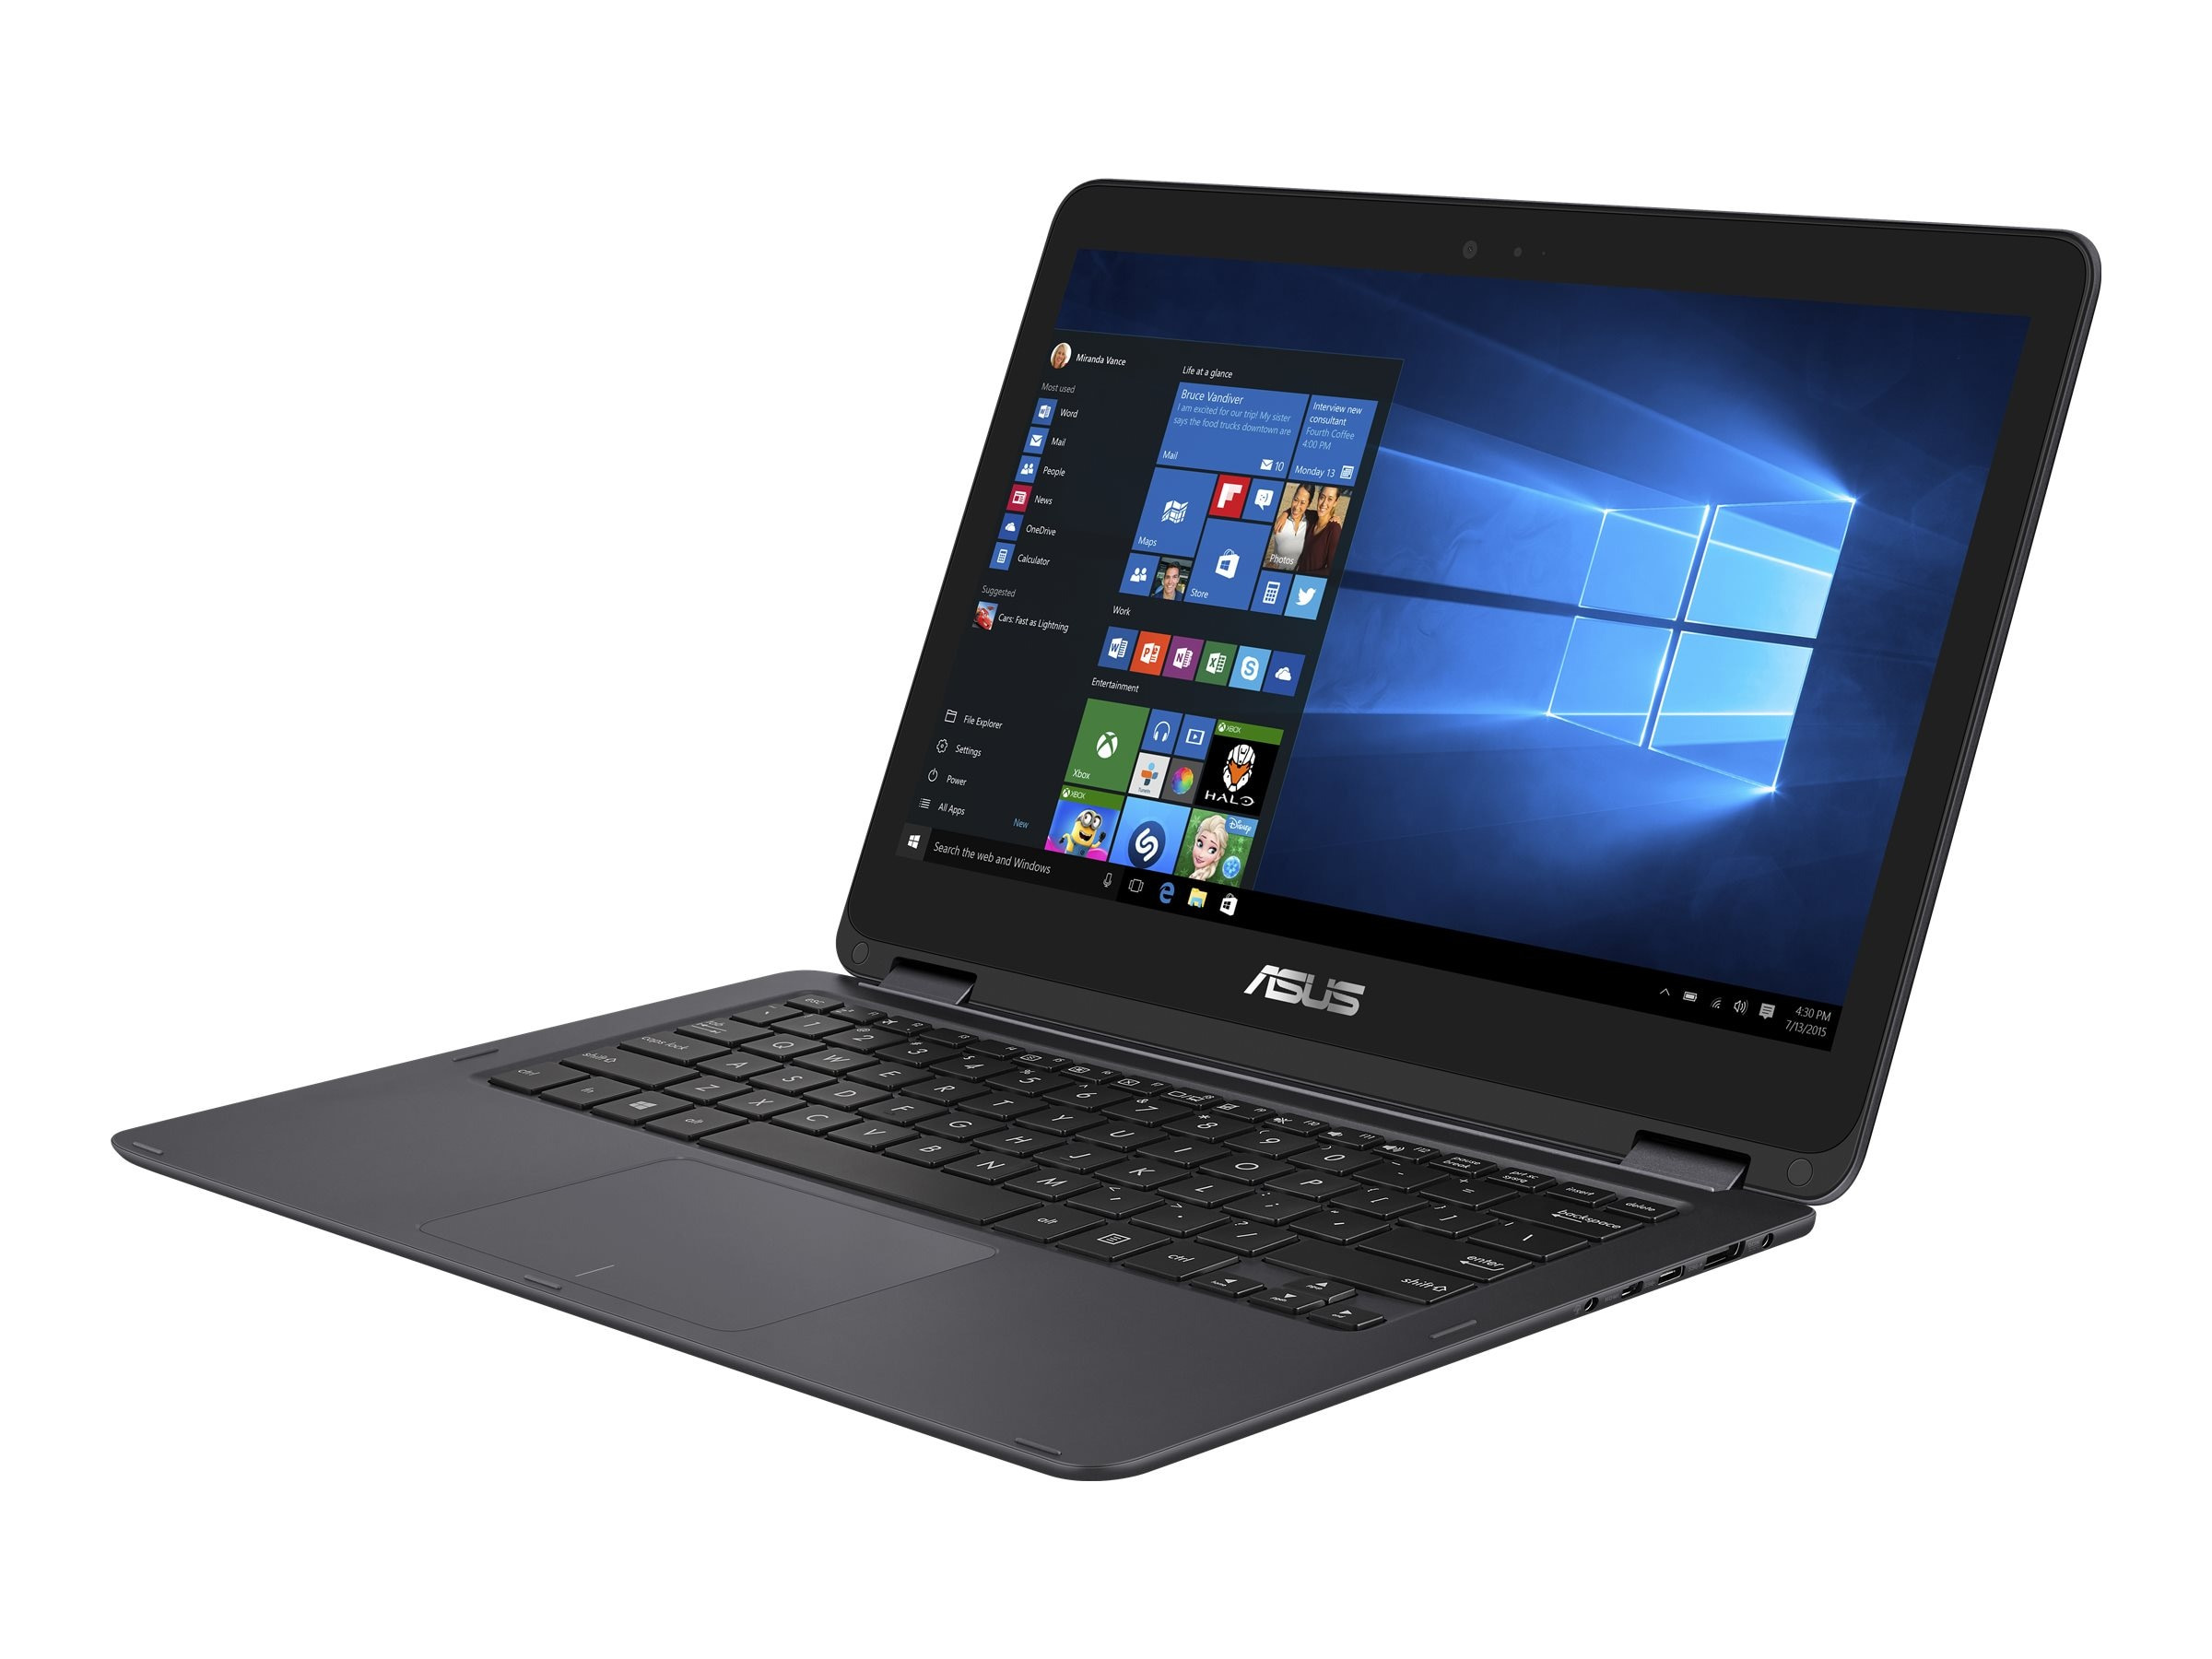 Asus Notebook PC Core m3-6Y30 8GB 512GB 13.3 W10